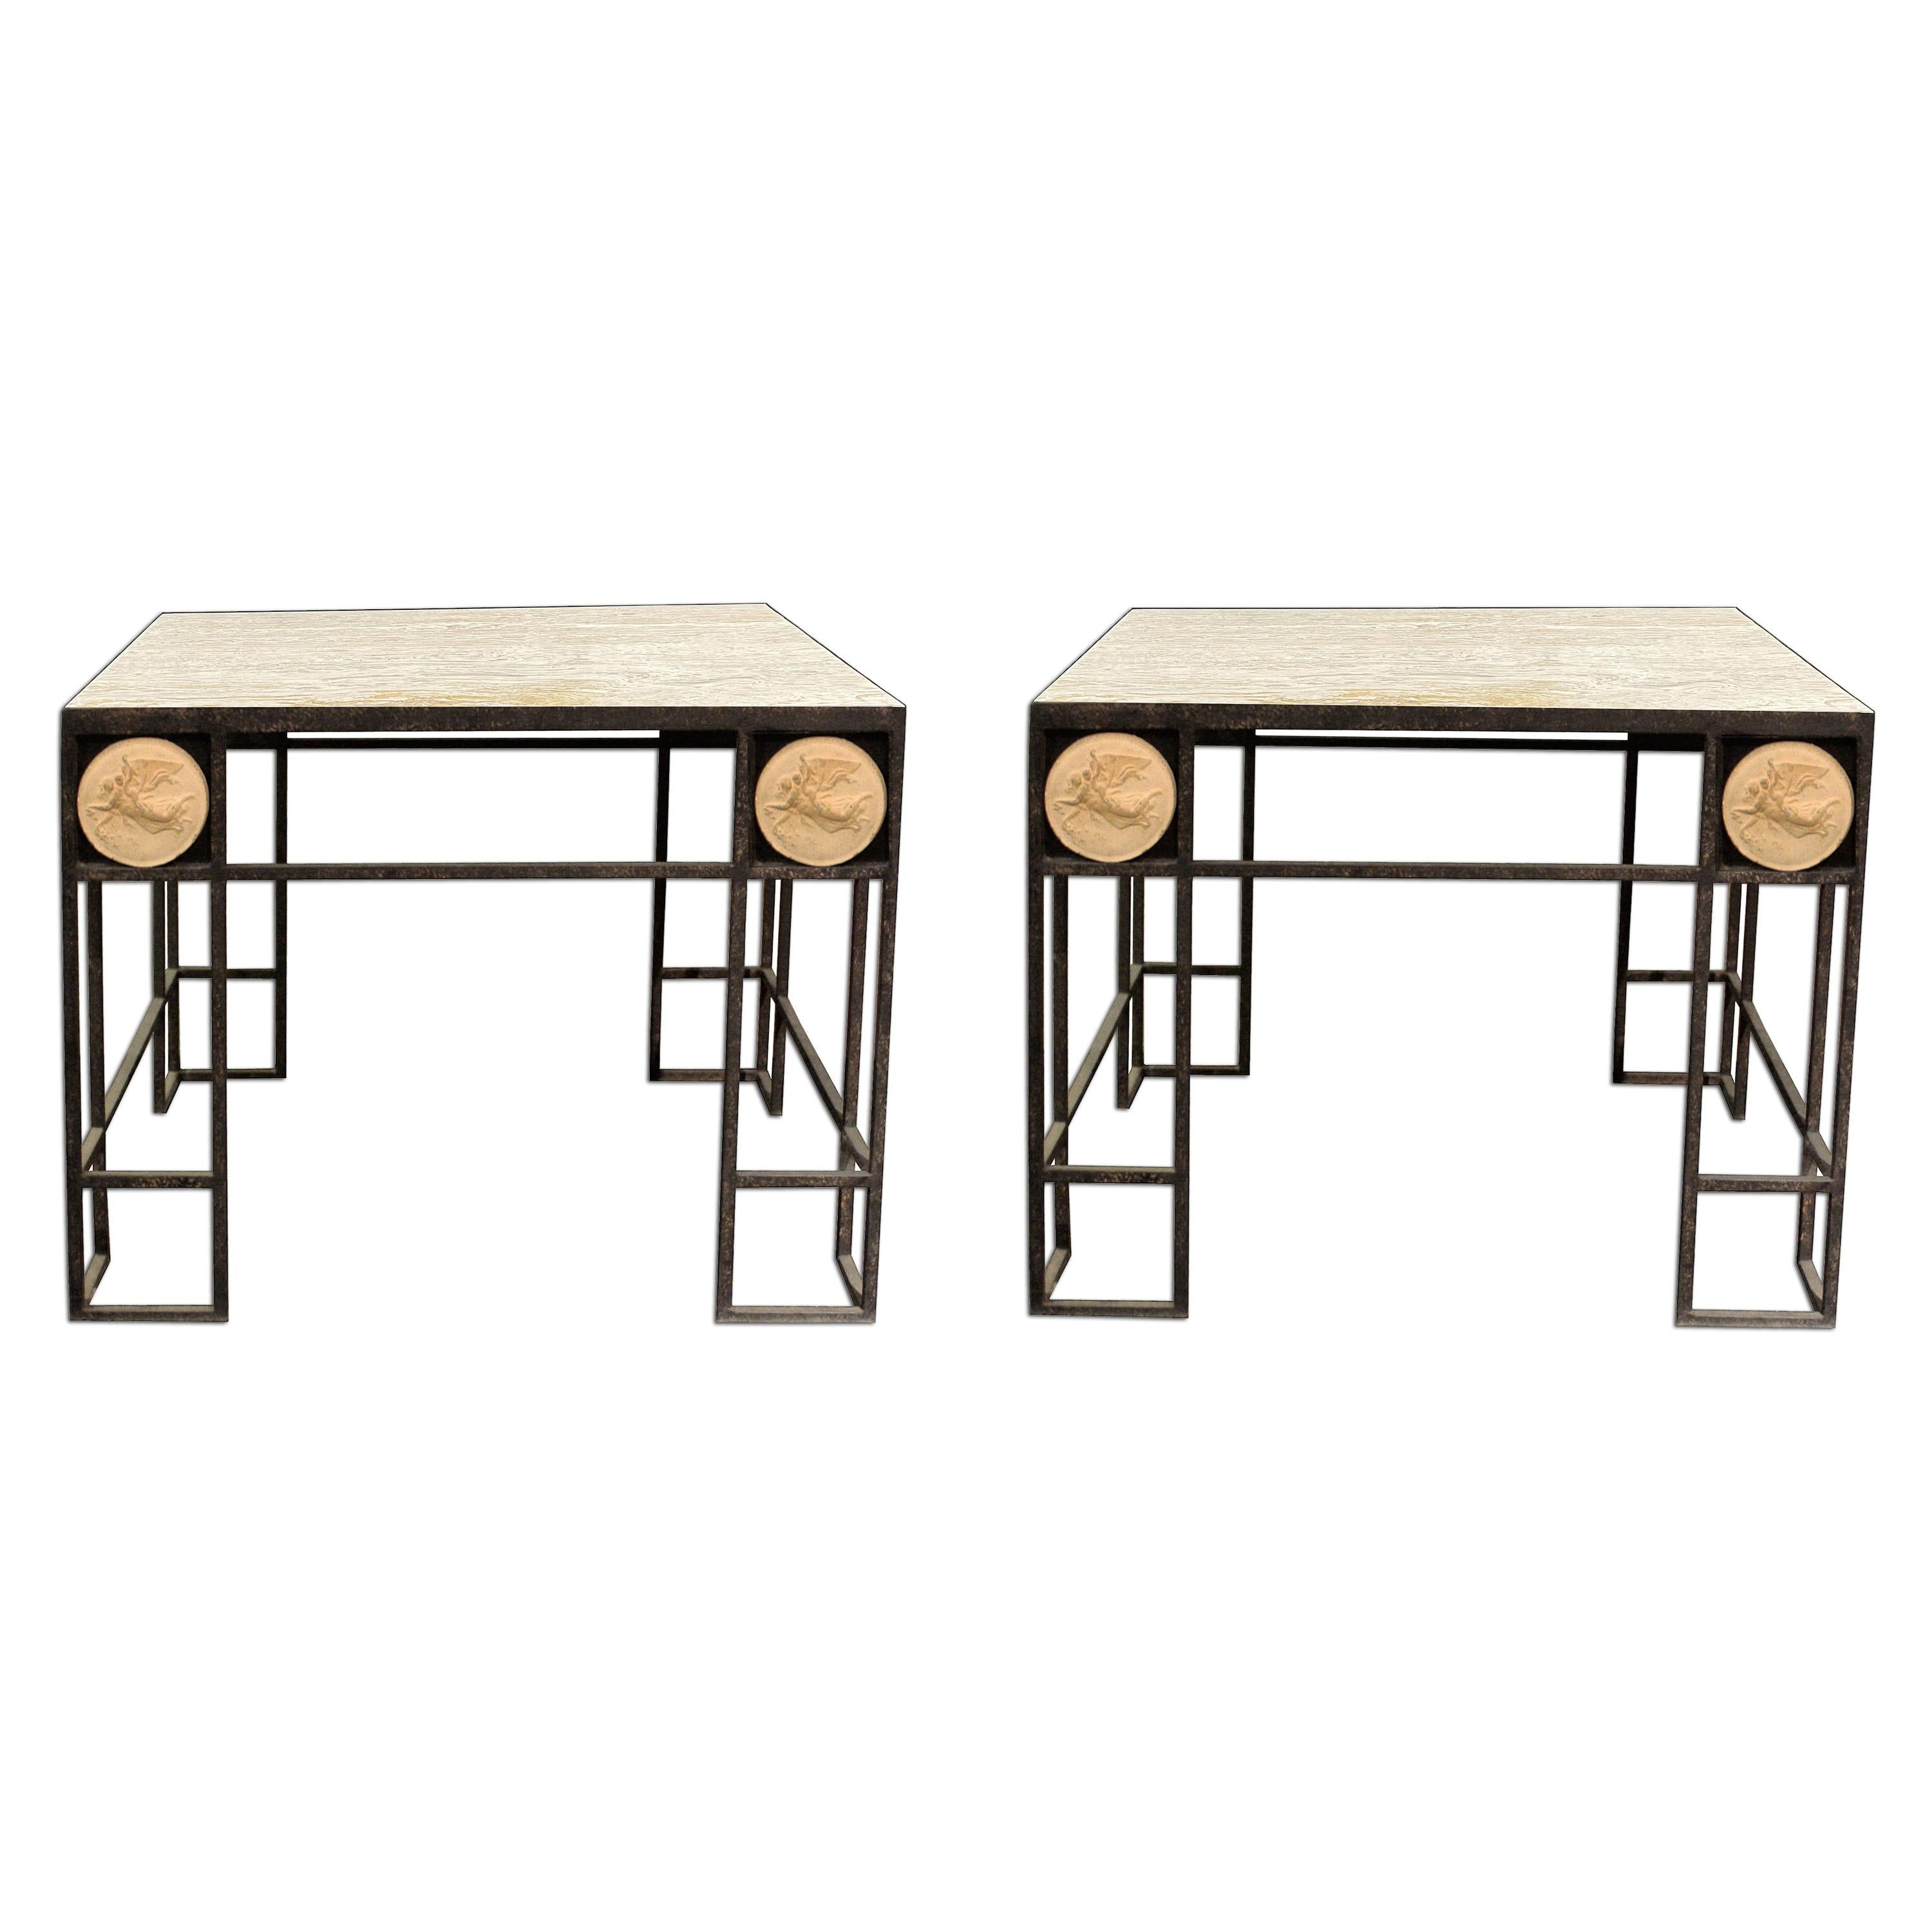 Pair of Travertine and Iron Coffee Tables, France, 1950